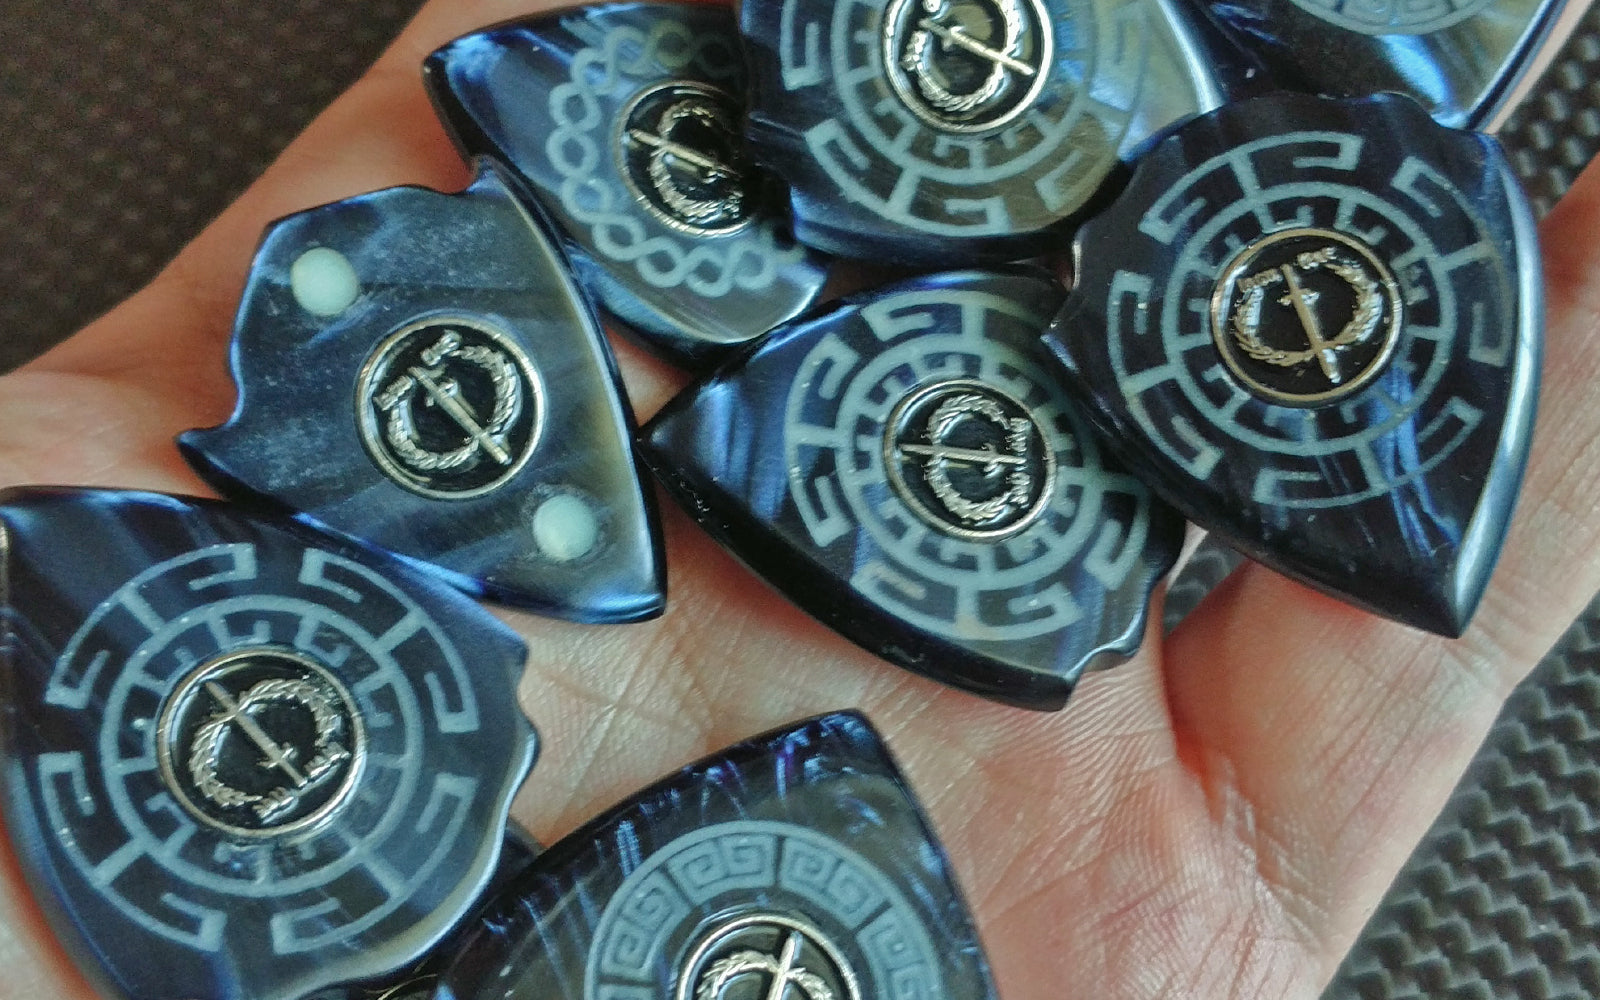 The NEW Imperial Series Guitar Picks